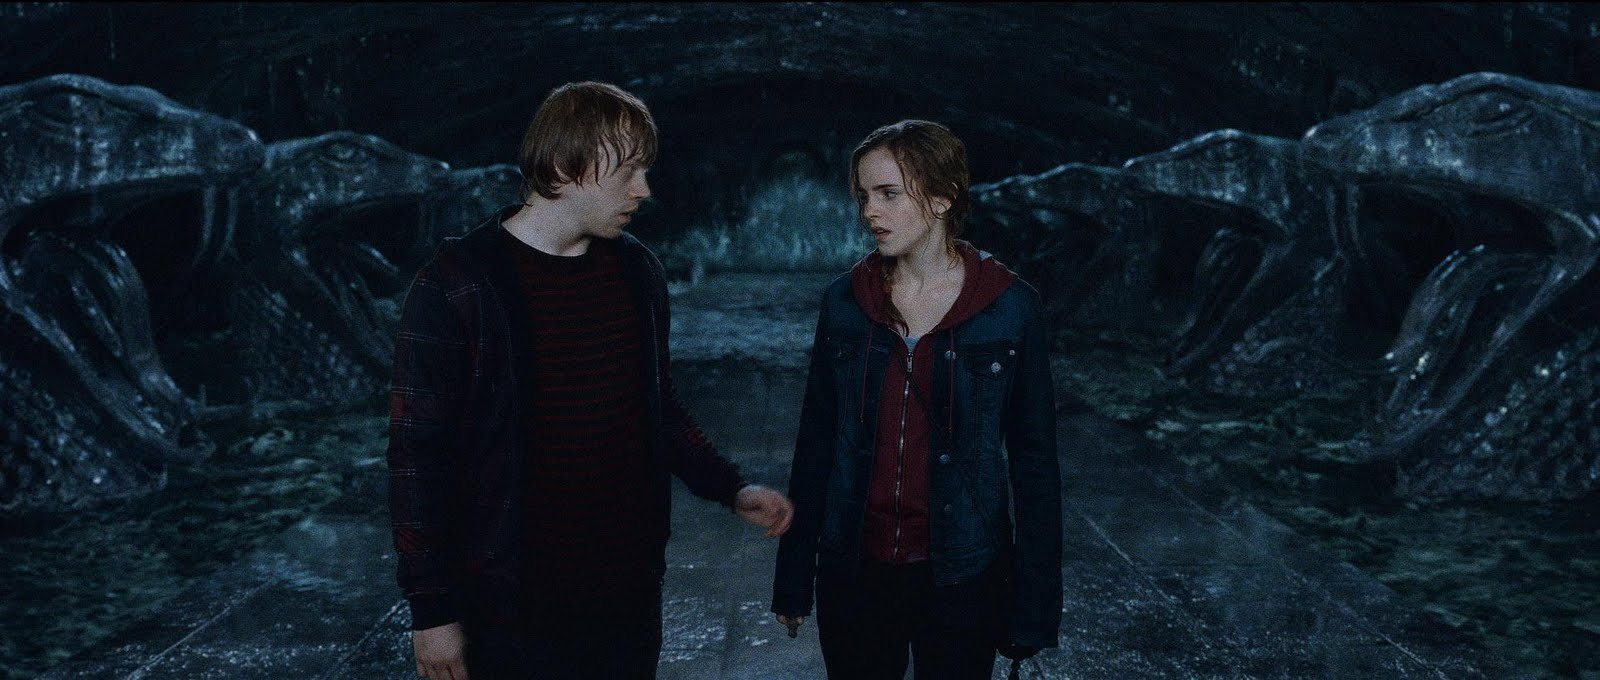 Laura's View: Harry Potter and the Deathly Hallows Part 2 Ron And Hermione Kiss Chamber Of Secrets